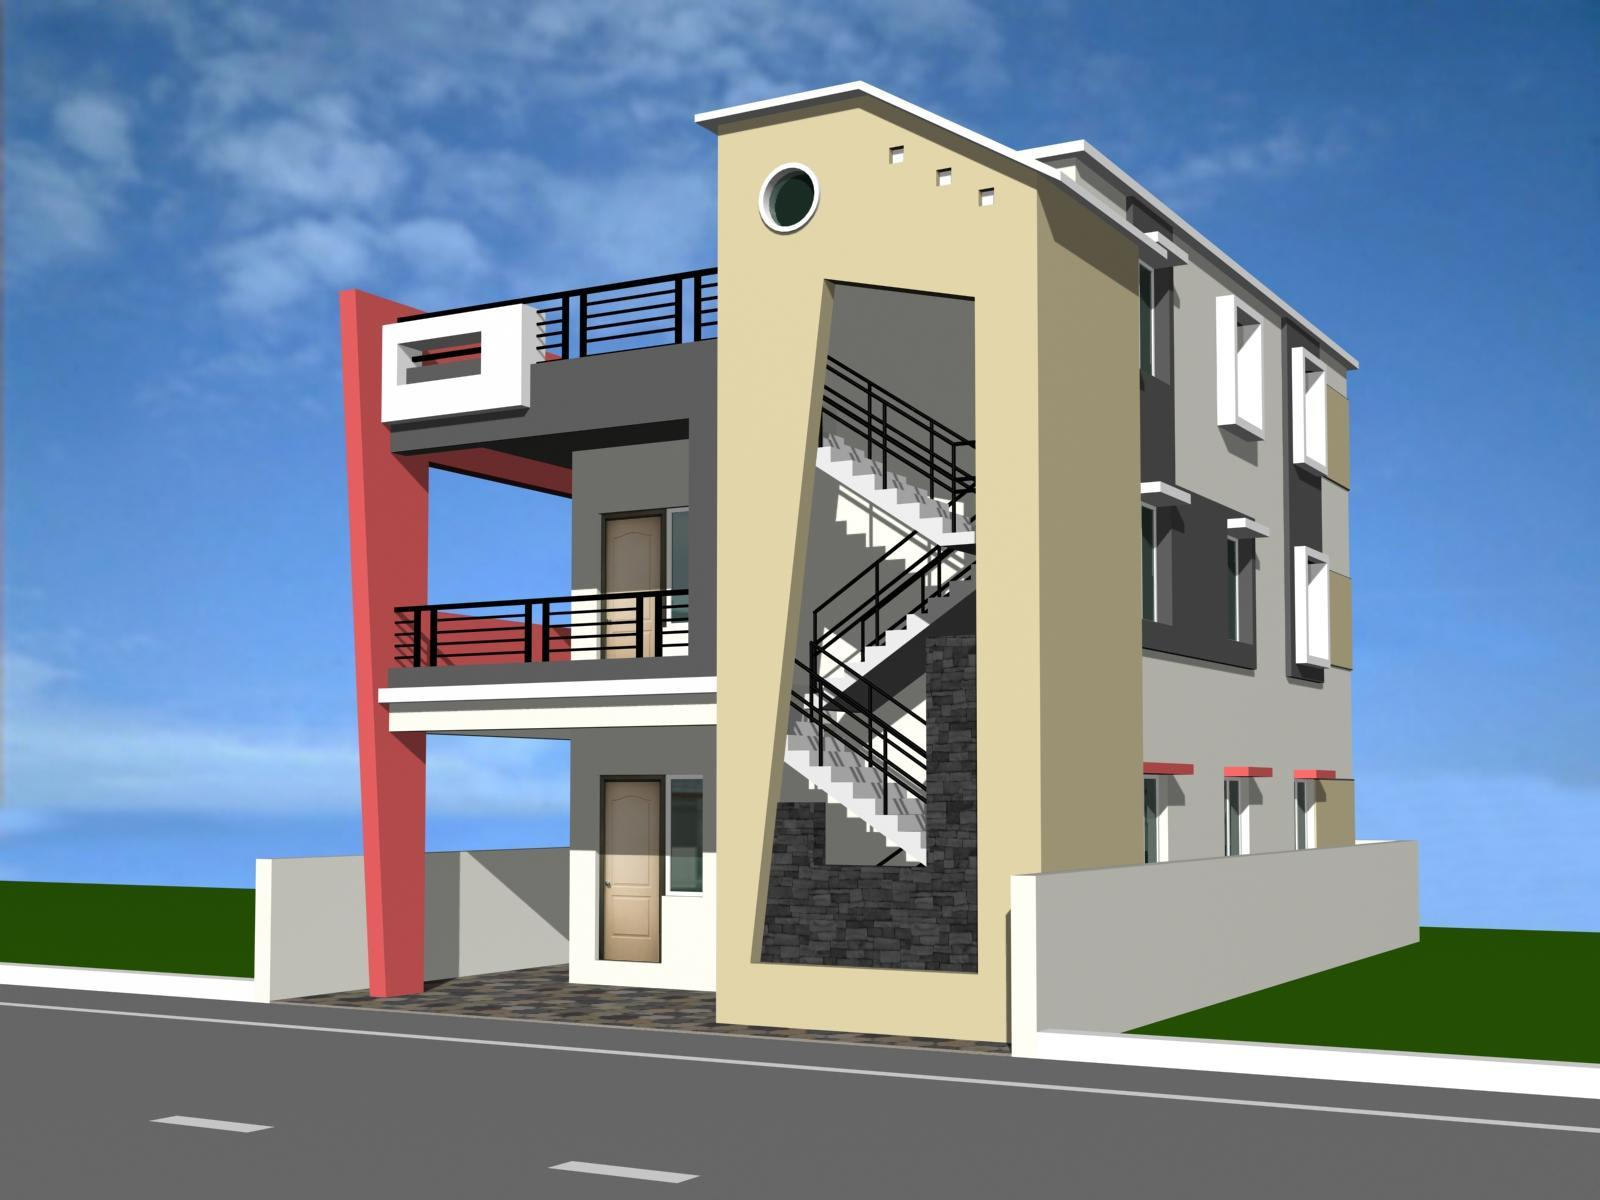 House elevation designs in hyderabad imagesHouse elevation designs in hyderabad images   House image. Home Elevation Designs. Home Design Ideas